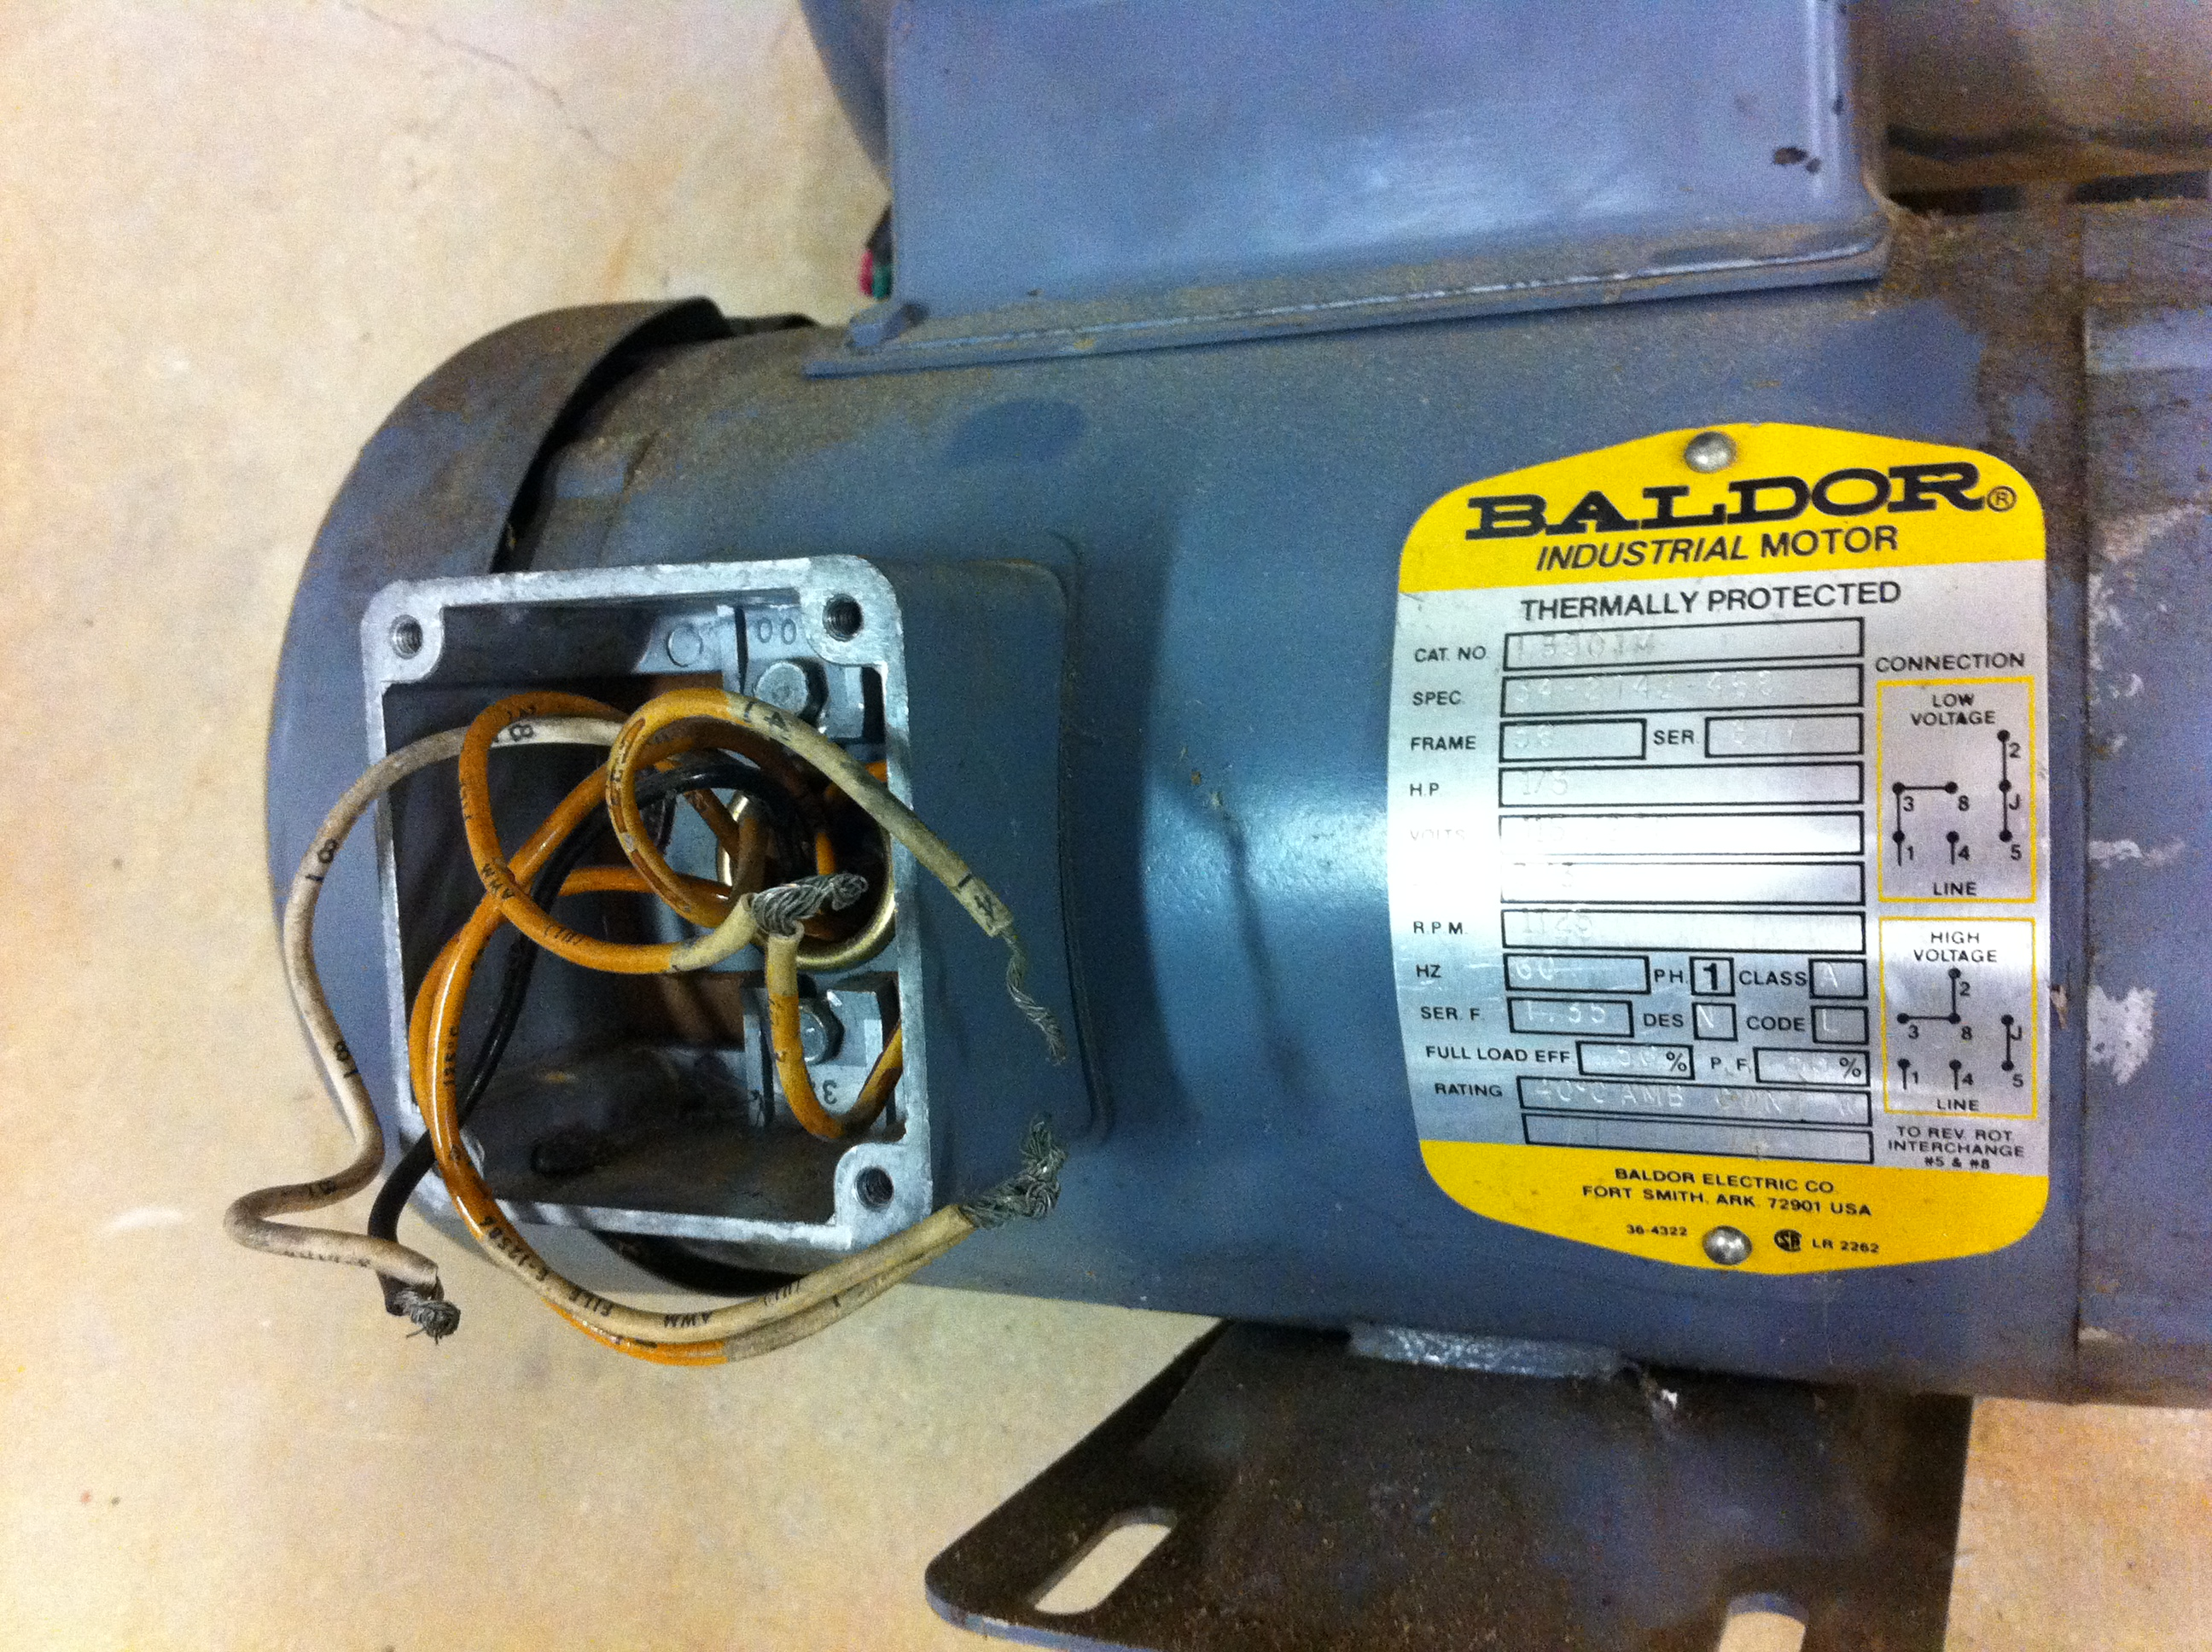 Baldor help wiring baldor motor the garage journal board electric motor 220 to 110 volt wiring diagram at alyssarenee.co